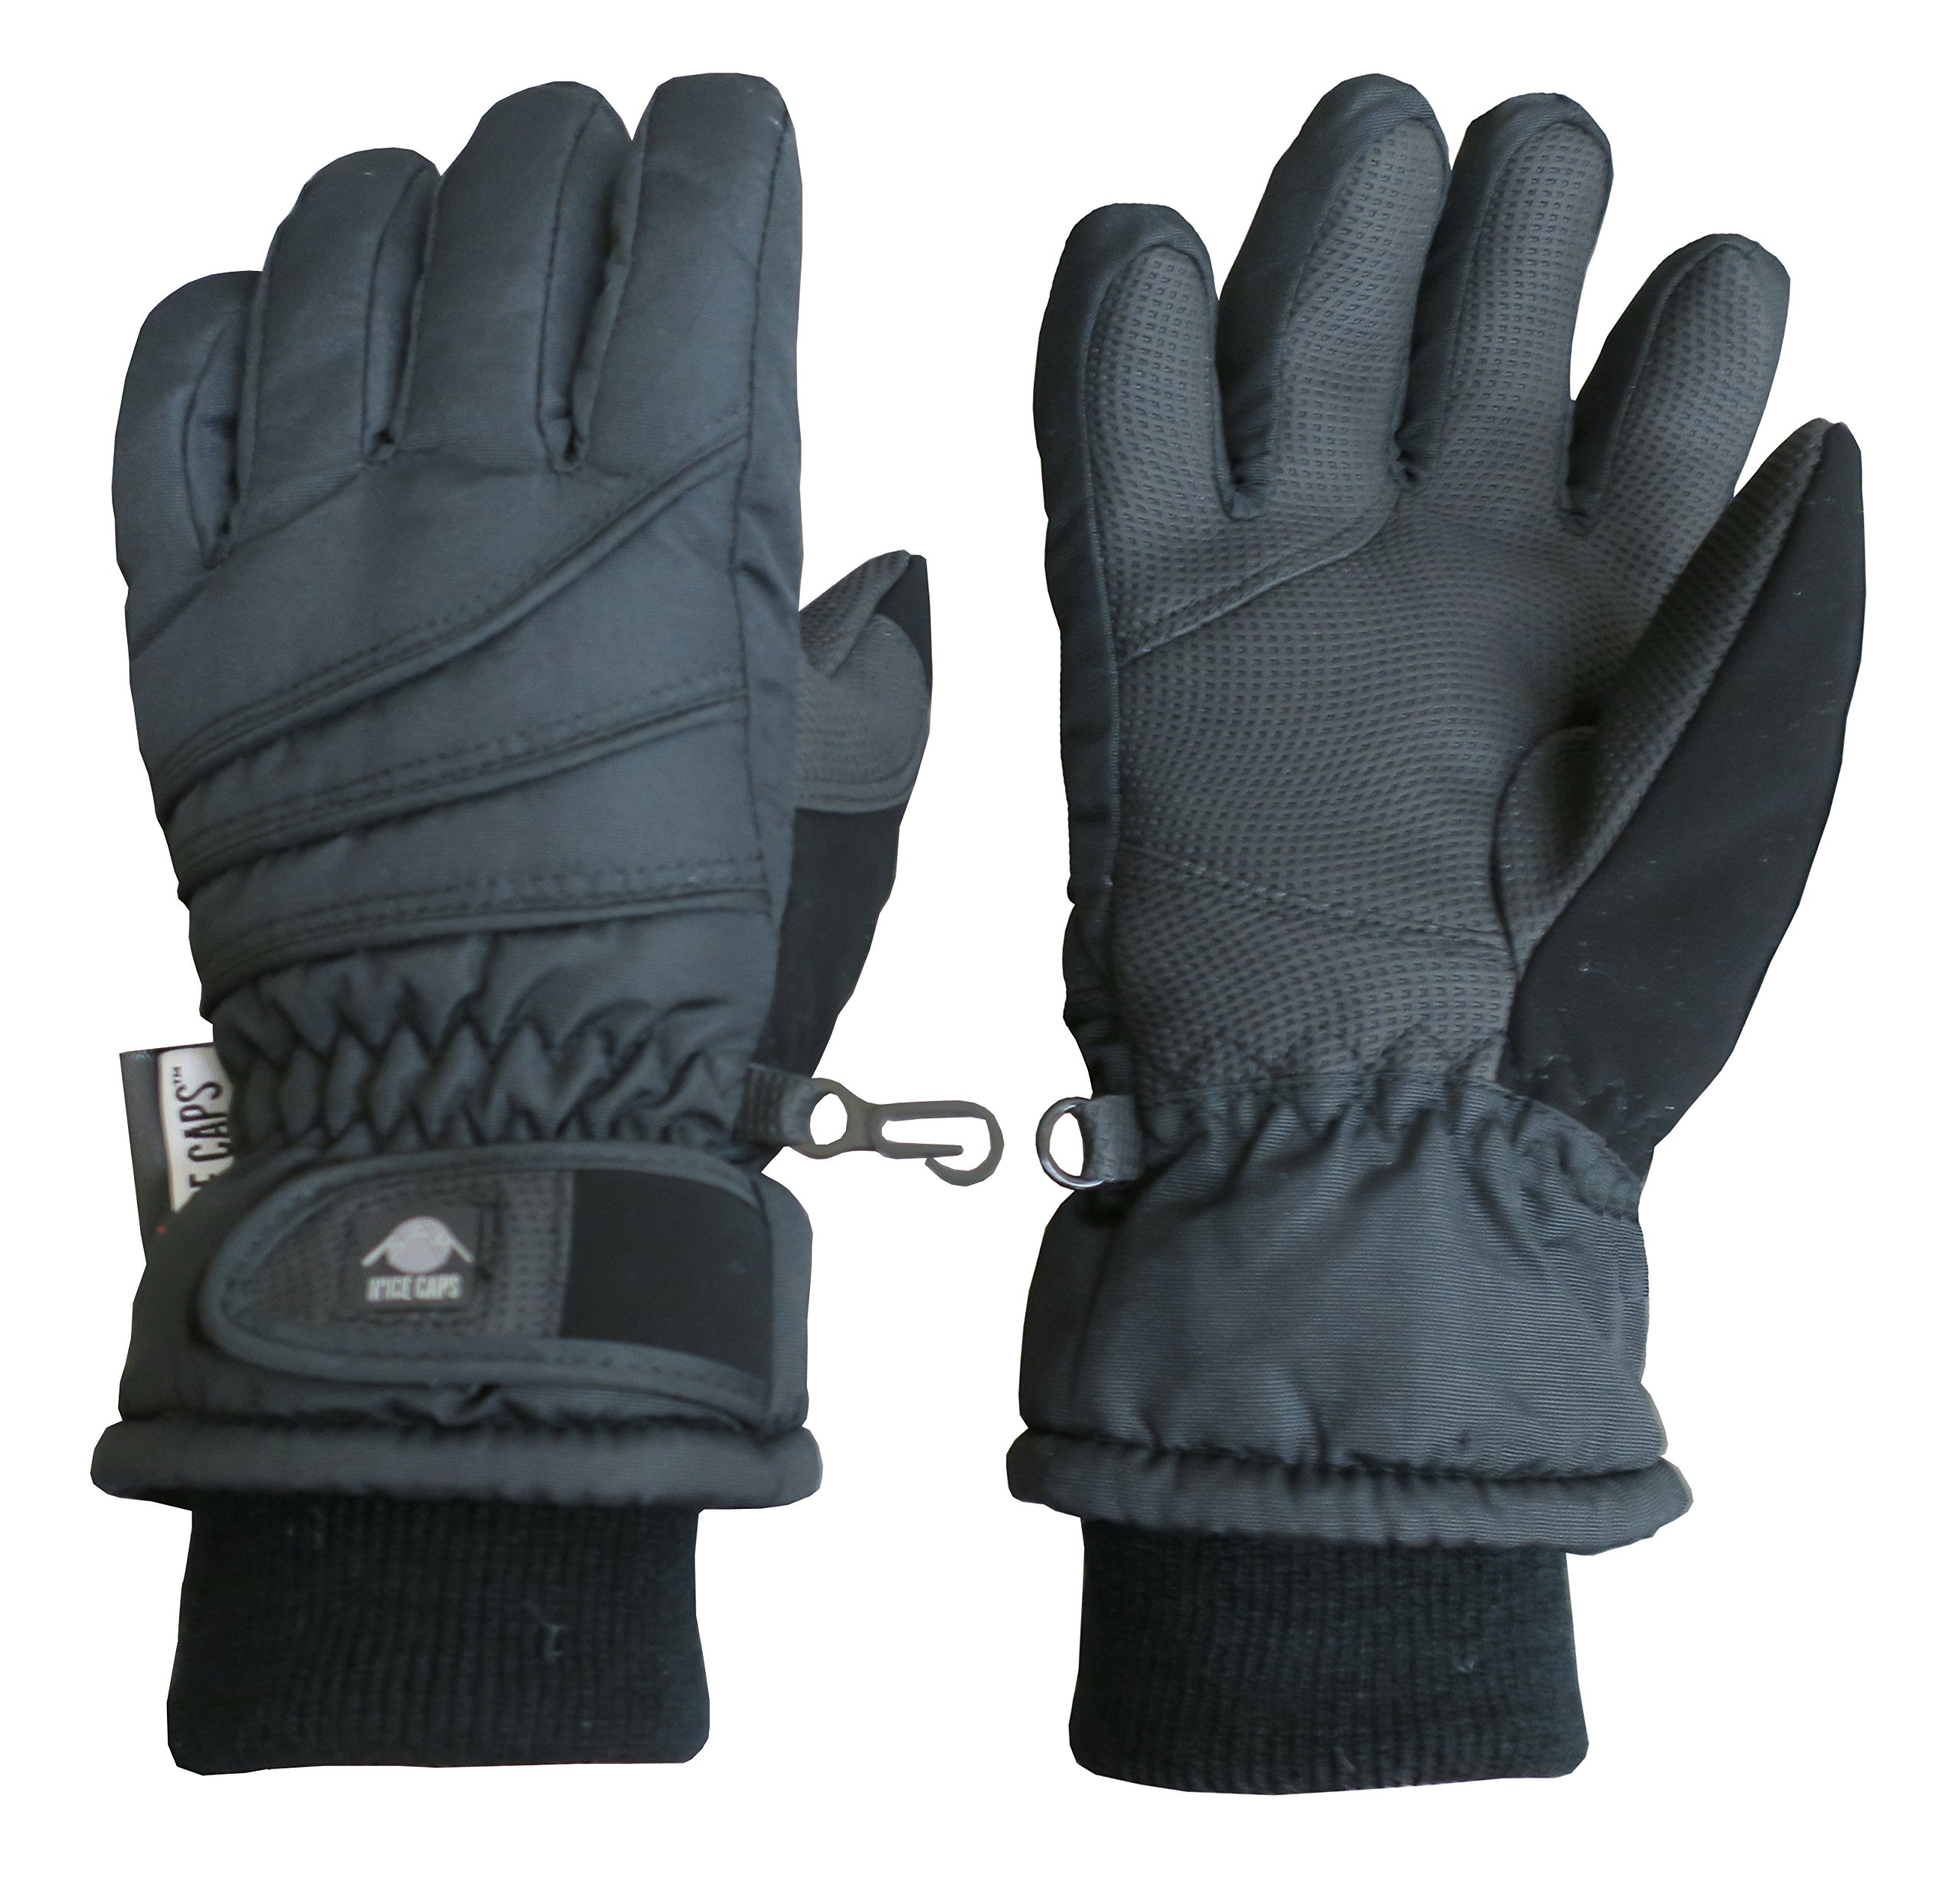 N'Ice Caps Kids Bulky Thinsulate Waterproof Winter Snow Ski Glove With Ridges (Black 1, 10-12yrs)